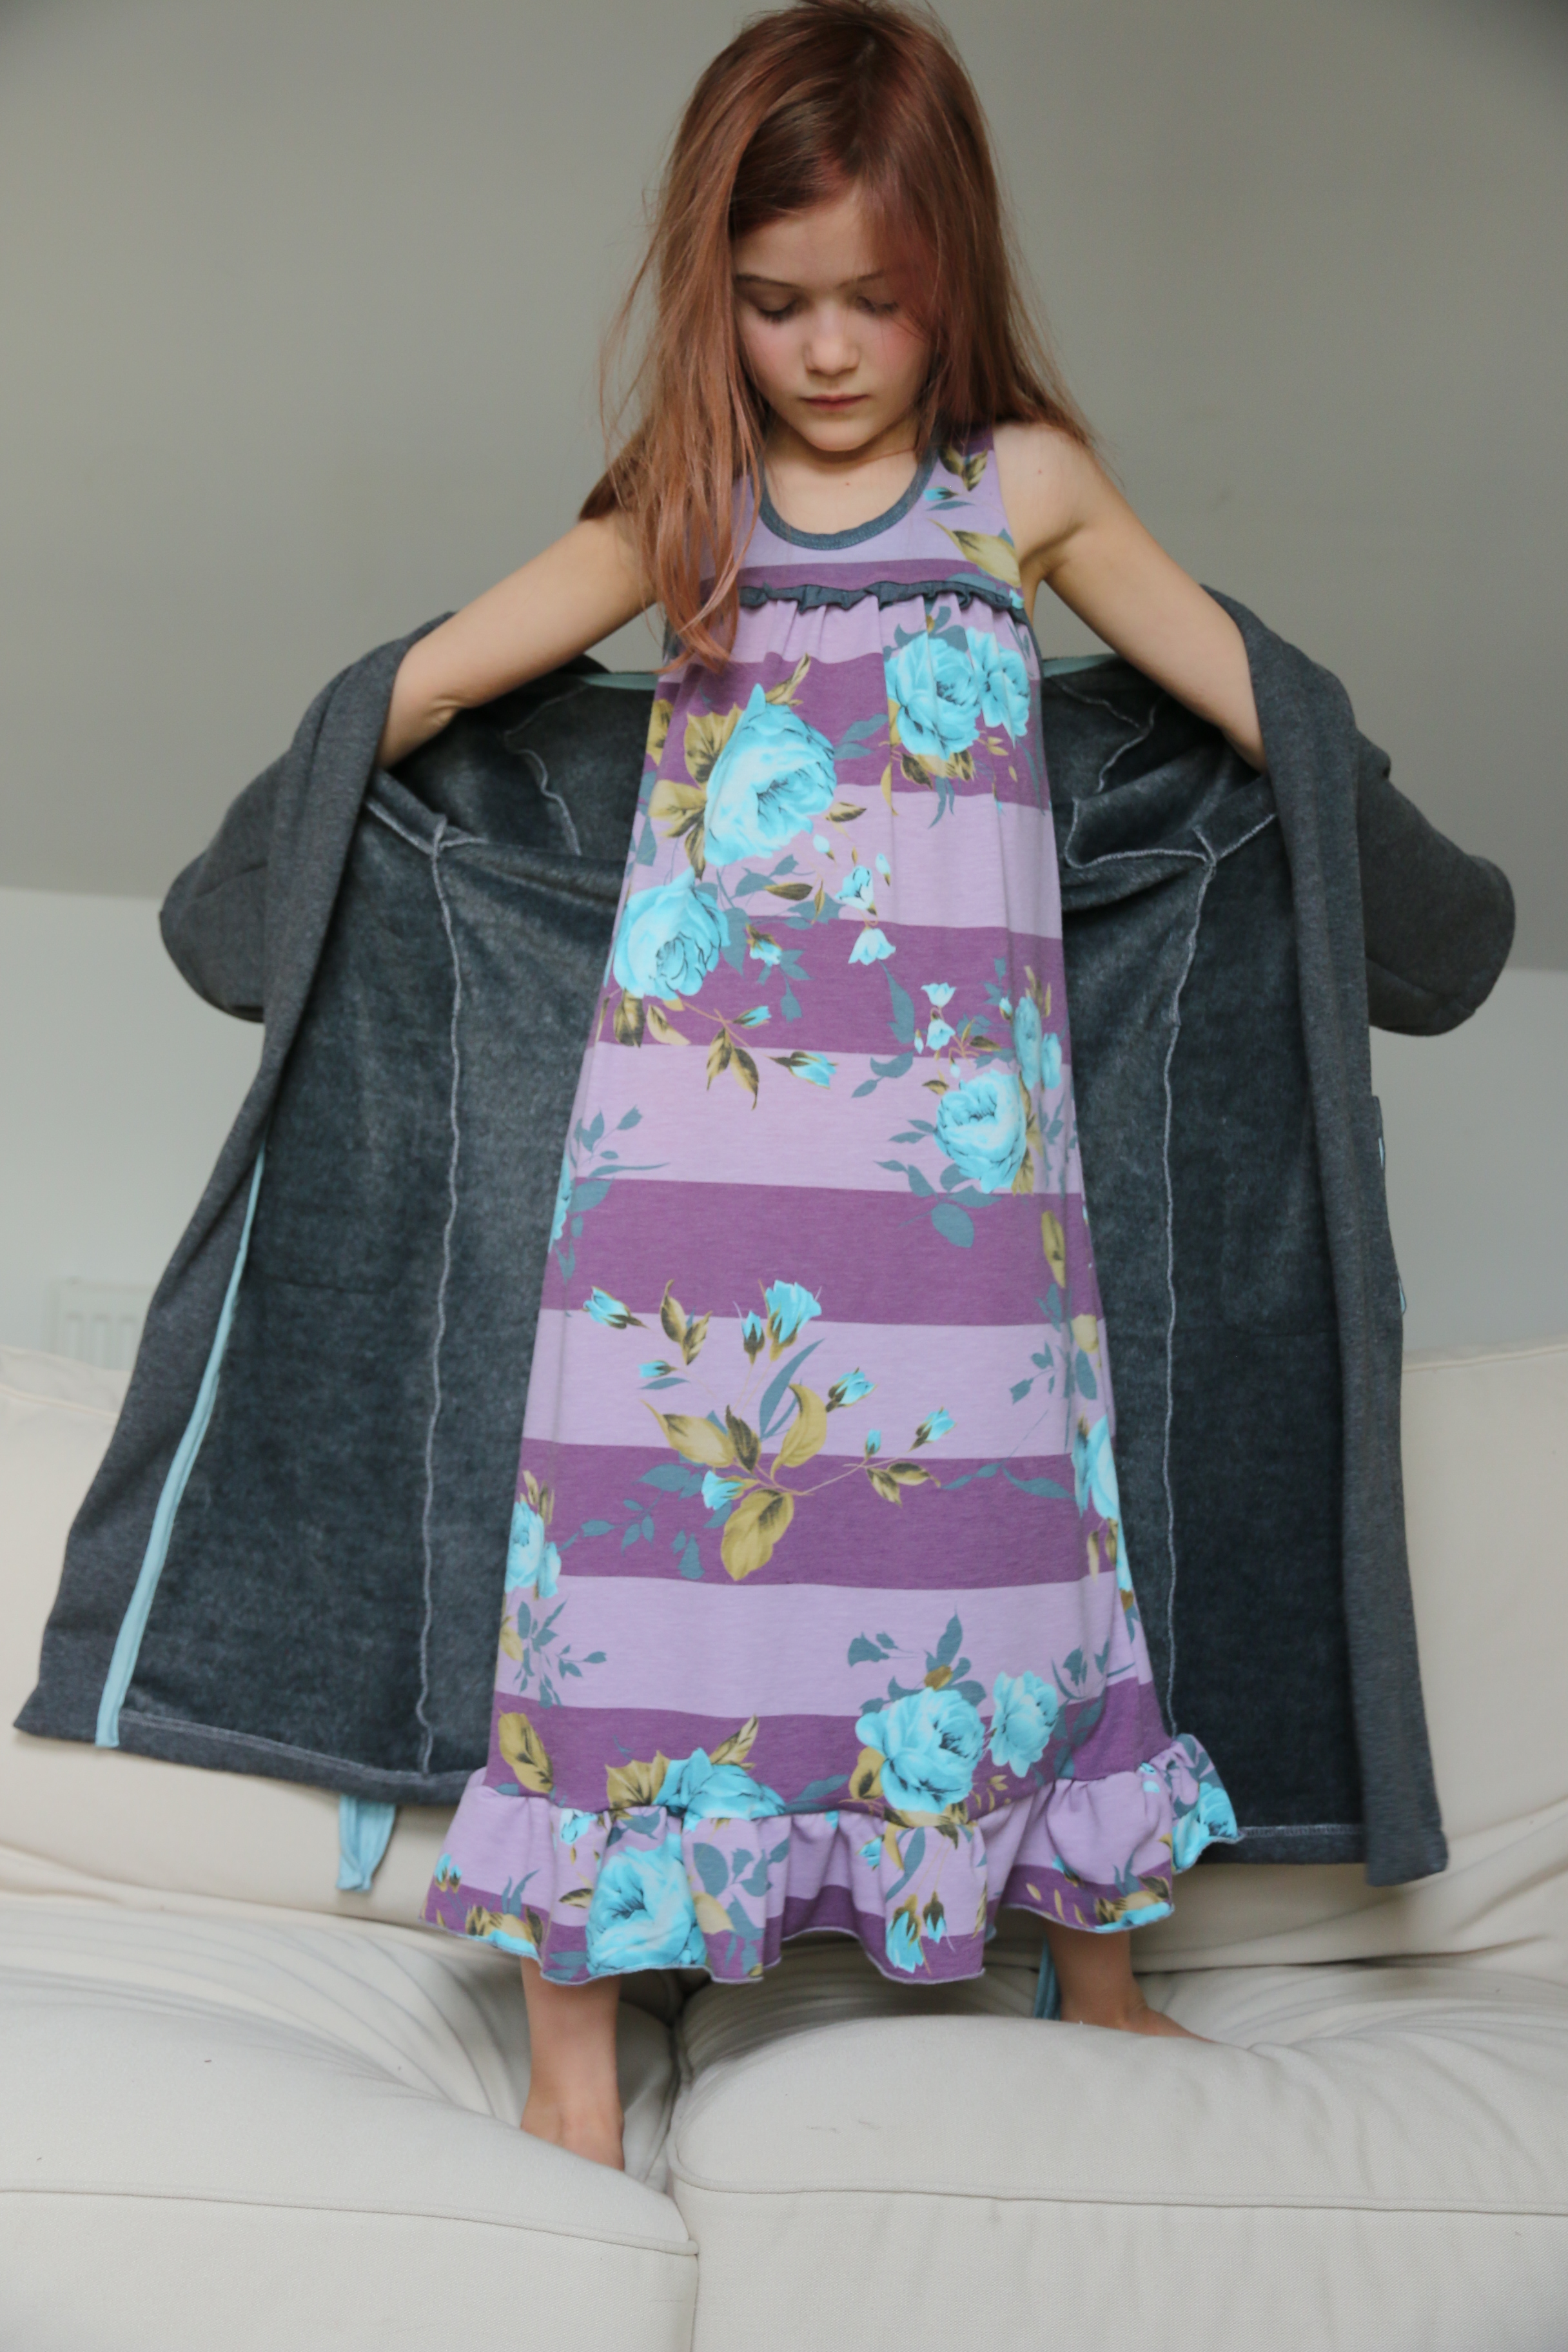 Starry Night PJs in gown option with ruffle detail across bodice and at hem. Shown with Arctic Fox housecoat.